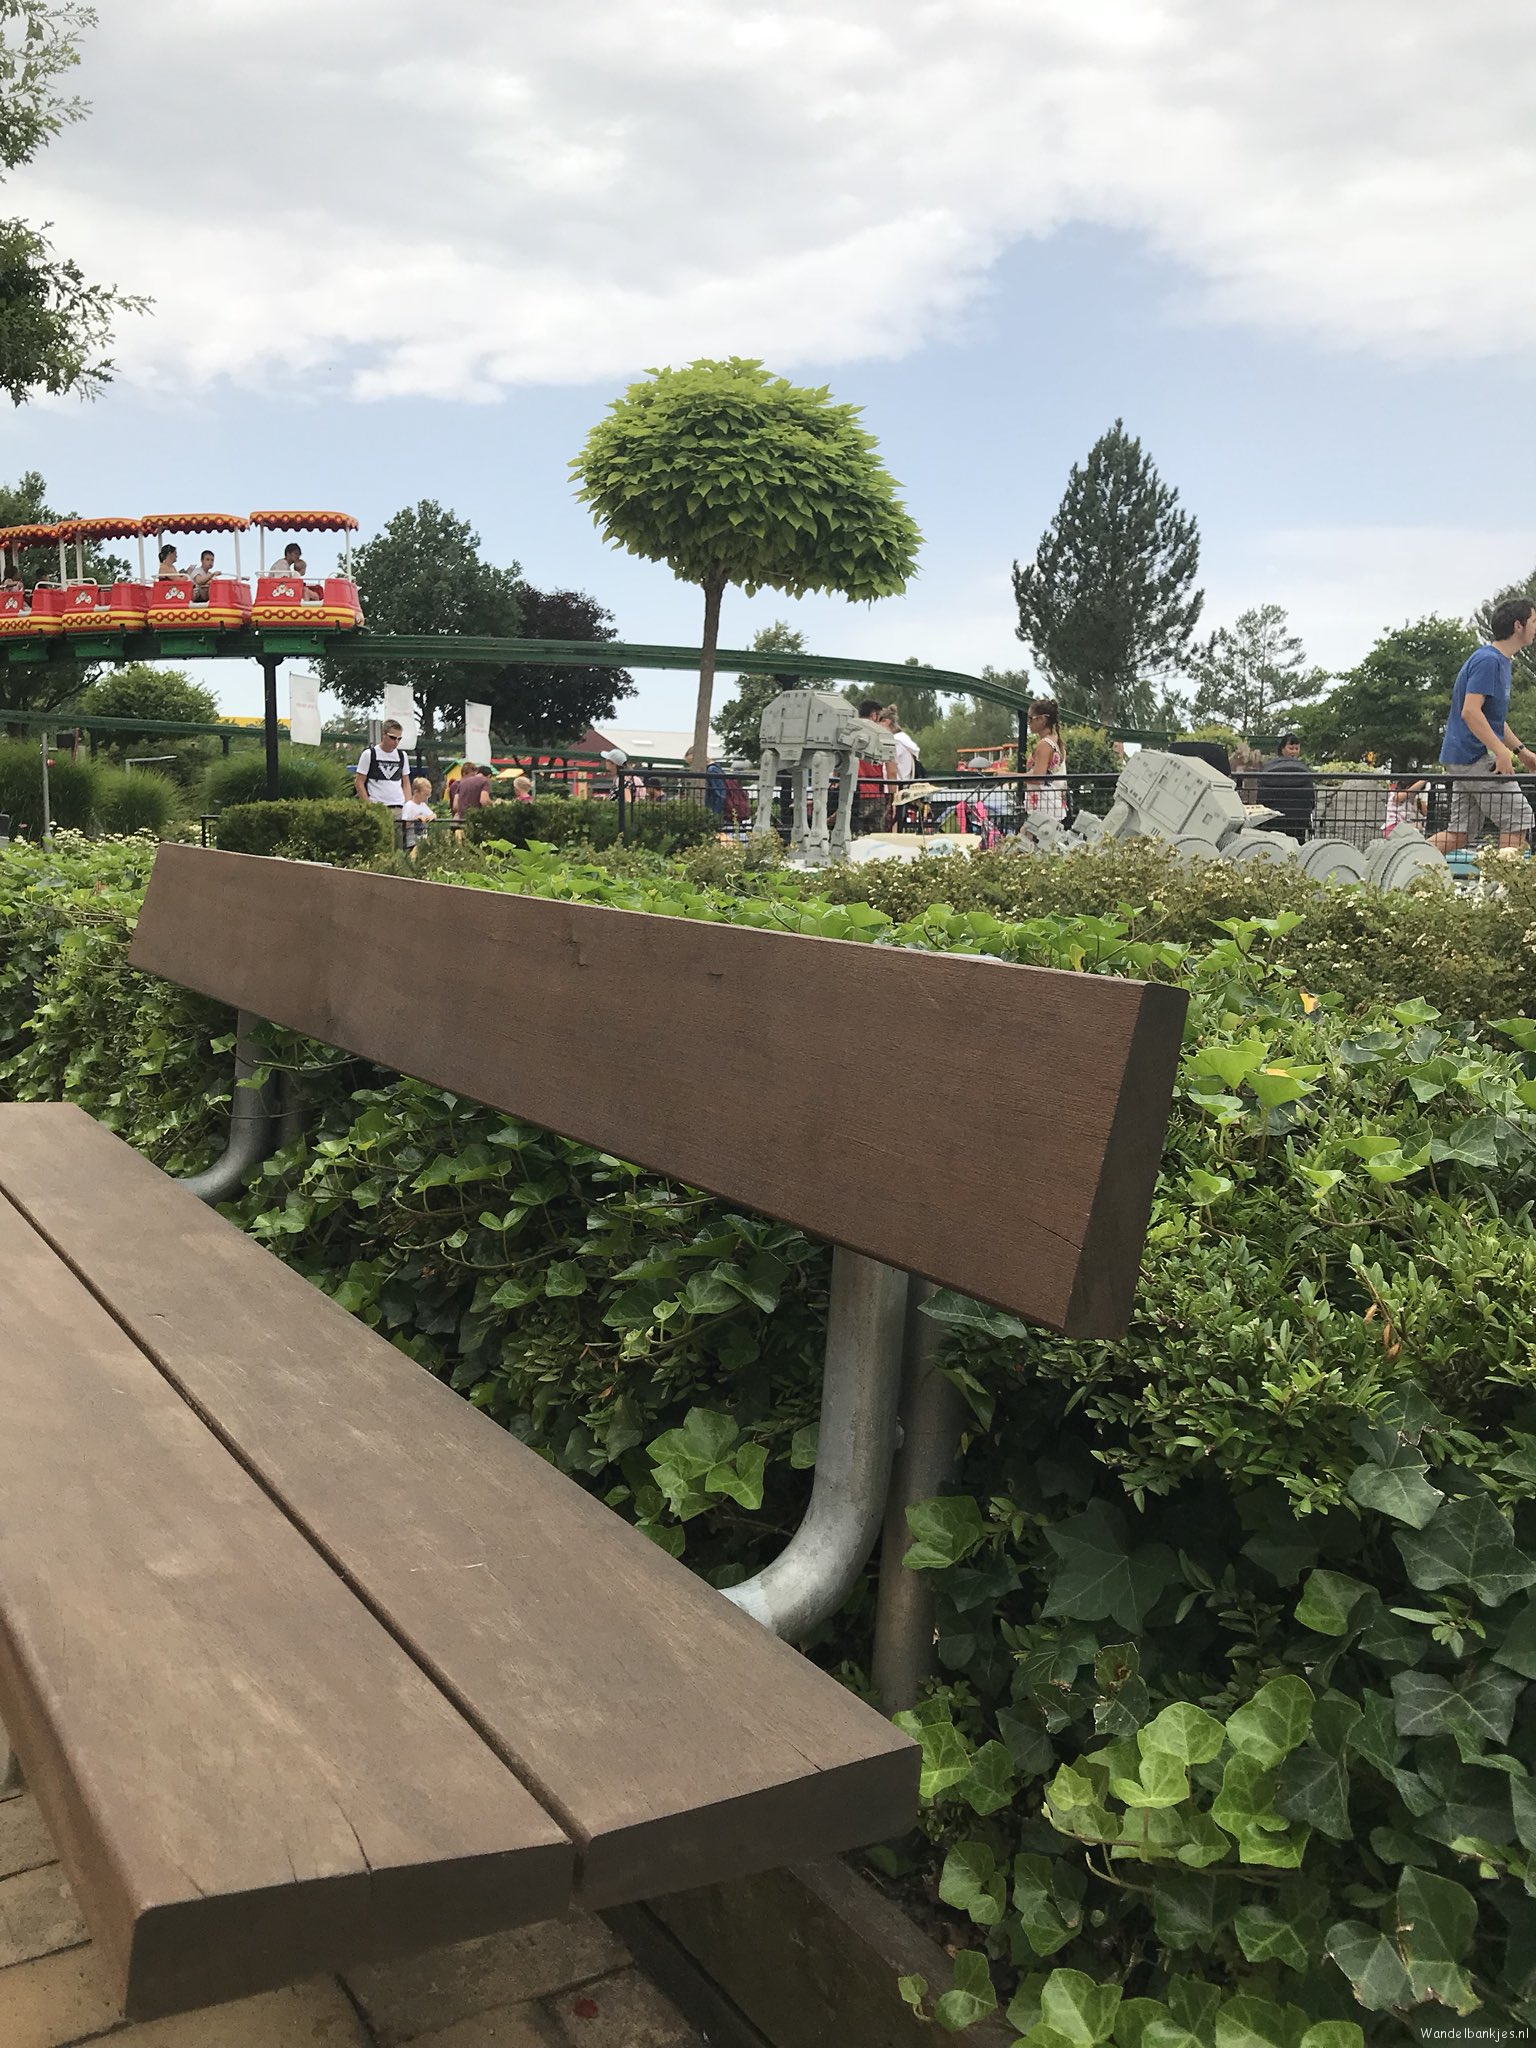 rt-dujo070-walking-benches-walkersbenches-not-quite-the-intent-but-still-a-walking-bench-in-legoland-https-t-co-ezjngxbqzt